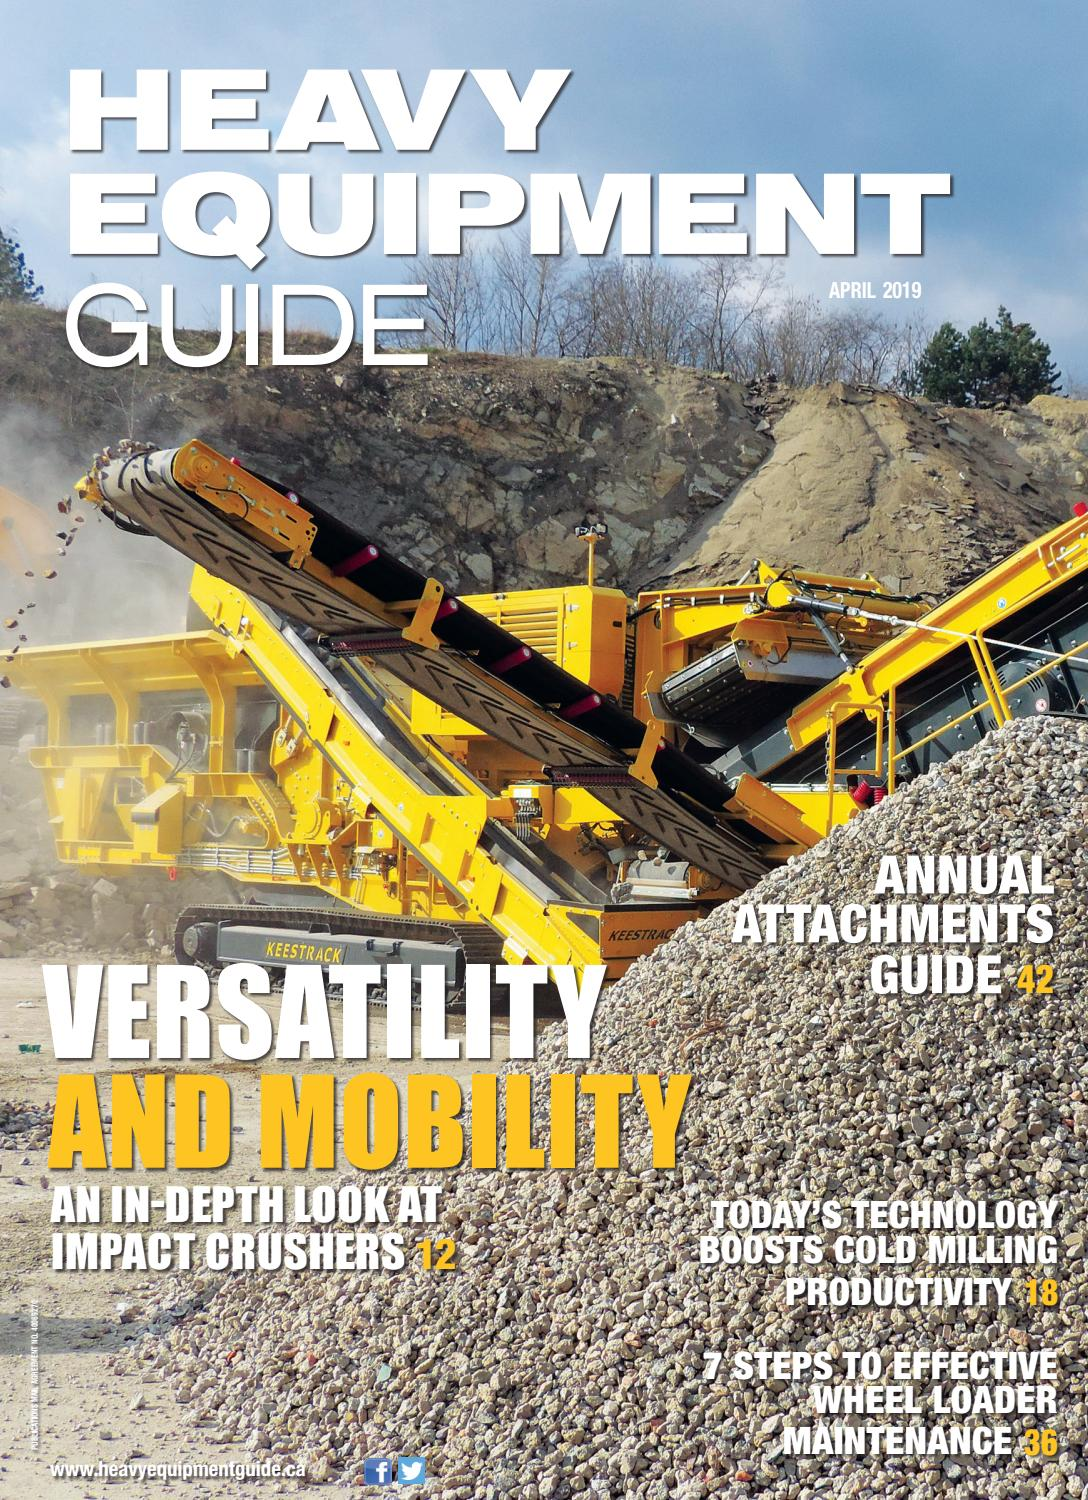 Heavy Equipment Guide April 2019, Volume 34, Number 4 by